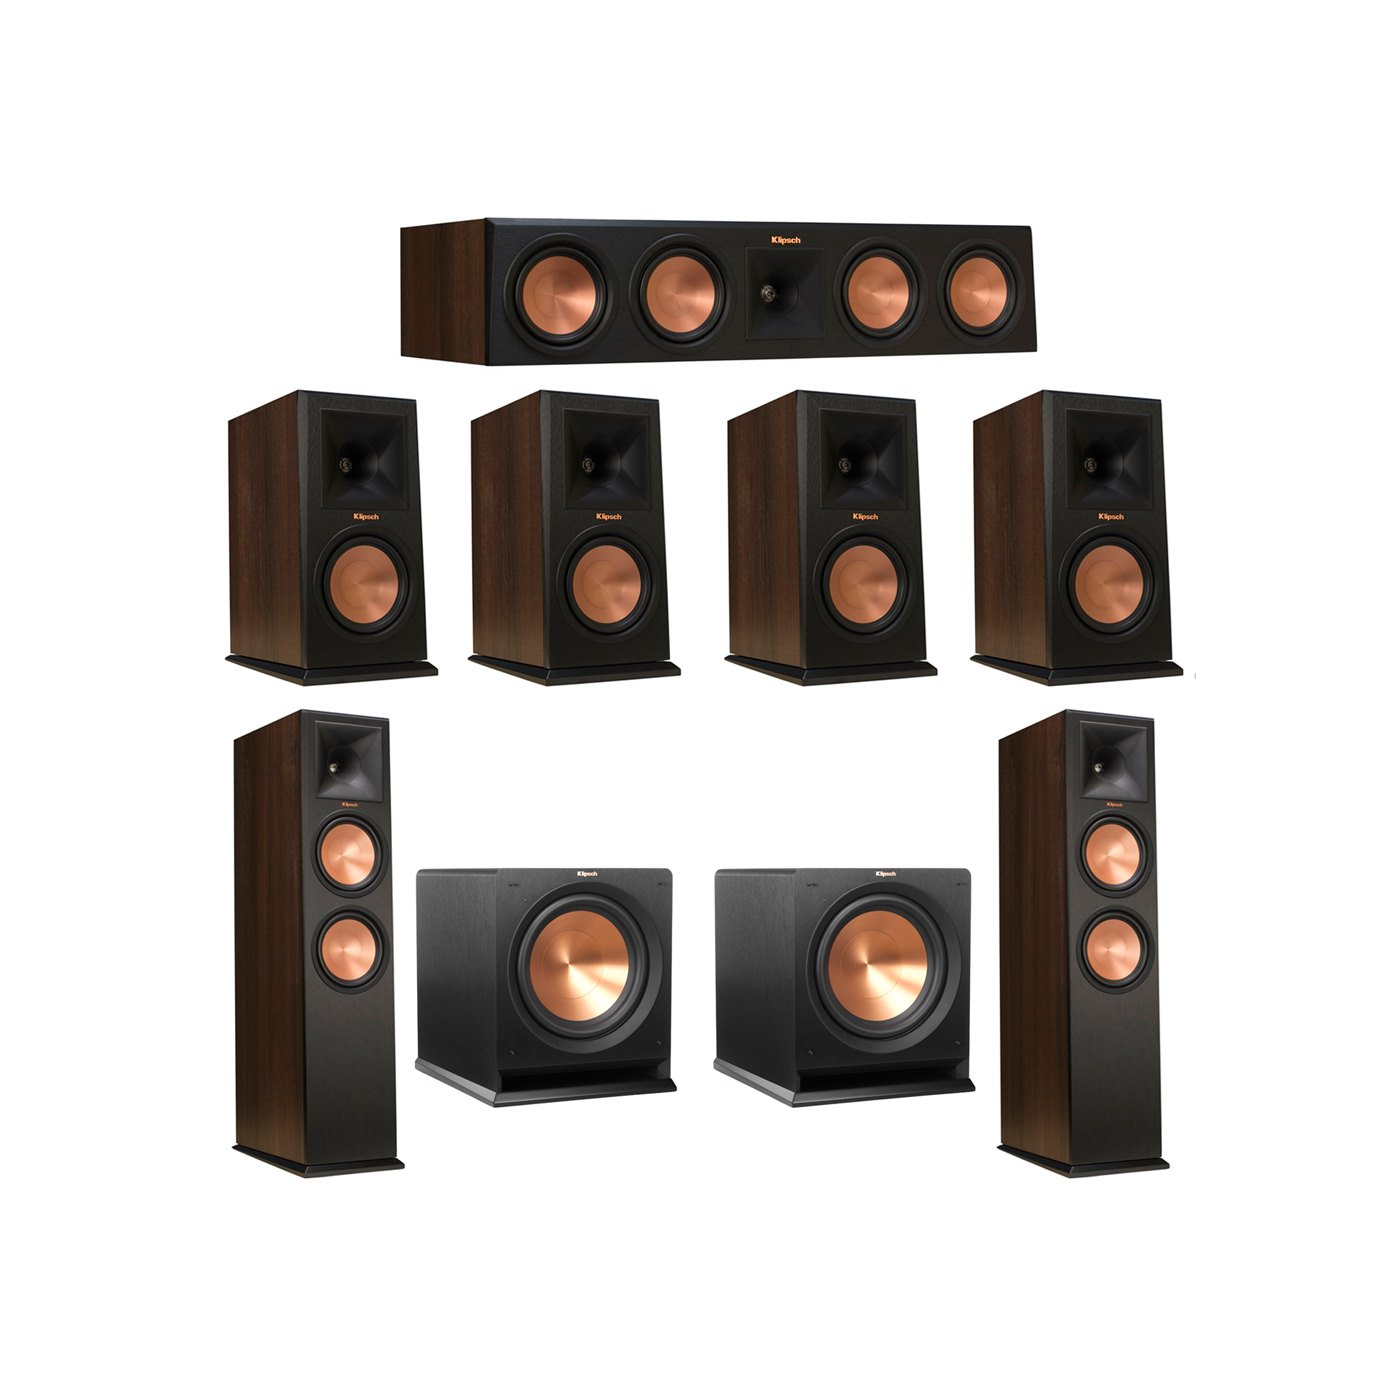 Klipsch 7.2 Walnut System with 2 RP-280F Tower Speakers, 1 RP-450C Center Speaker, 4 Klipsch RP-160M Bookshelf Speakers, 2 Klipsch R-112SW Subwoofer